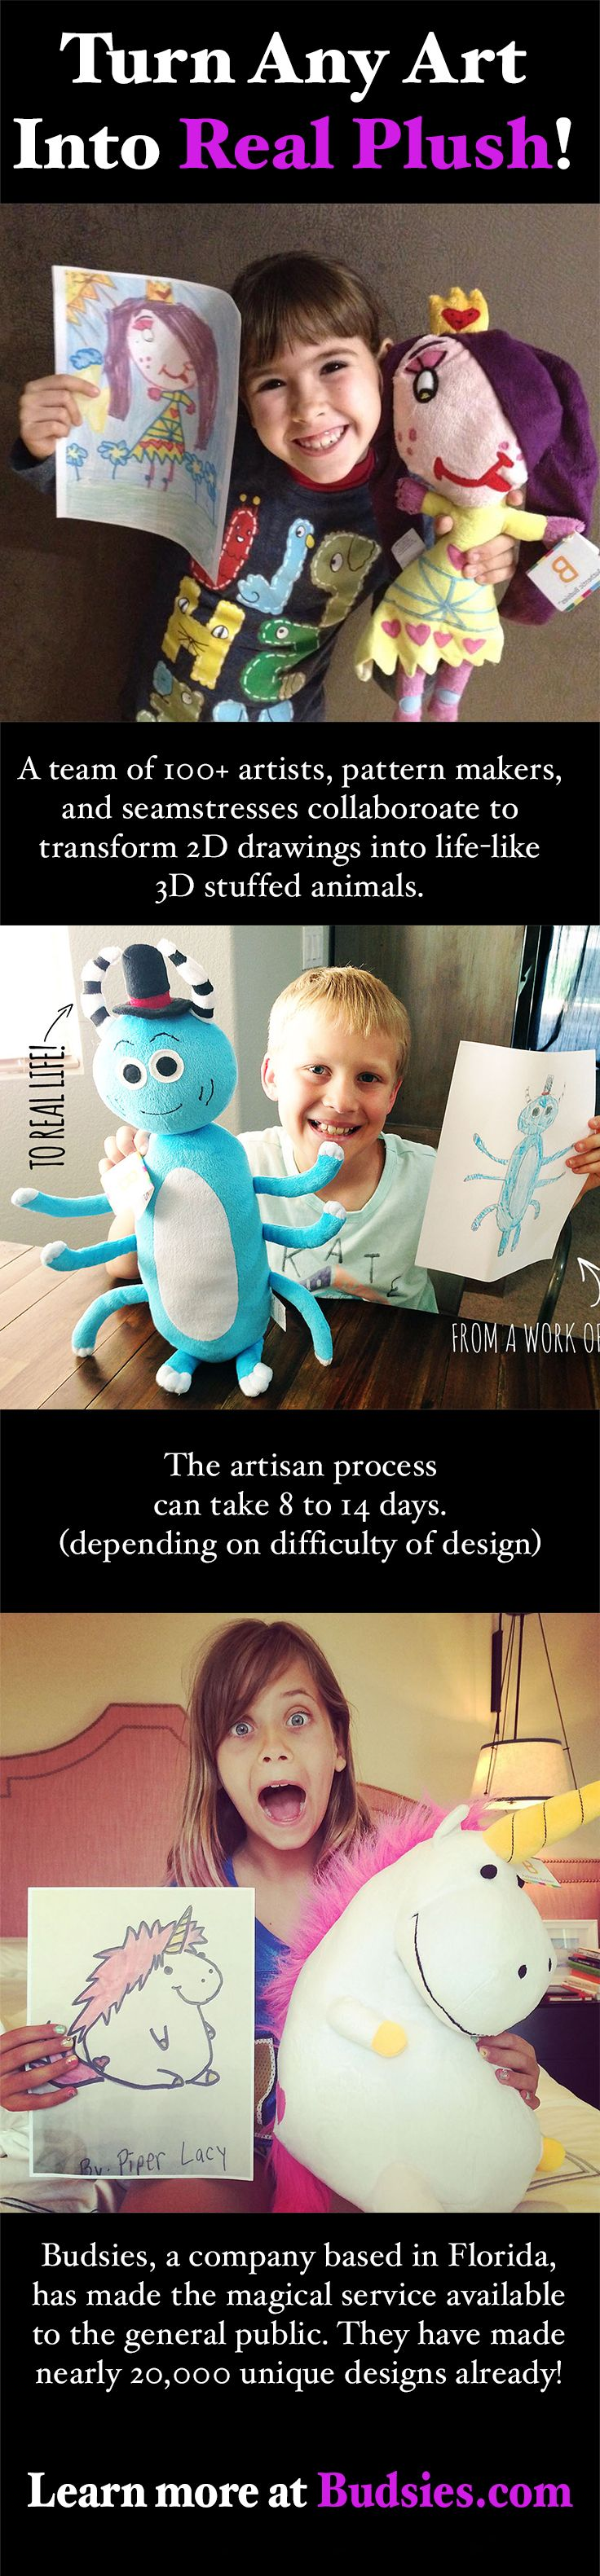 Turn art & drawings into stuffed animals for only $89! Perfect gift for the holidays, birthdays, or just because. This cool gift has even been featured on Shark Tank! Visit Budsies.com to learn more #giftideas